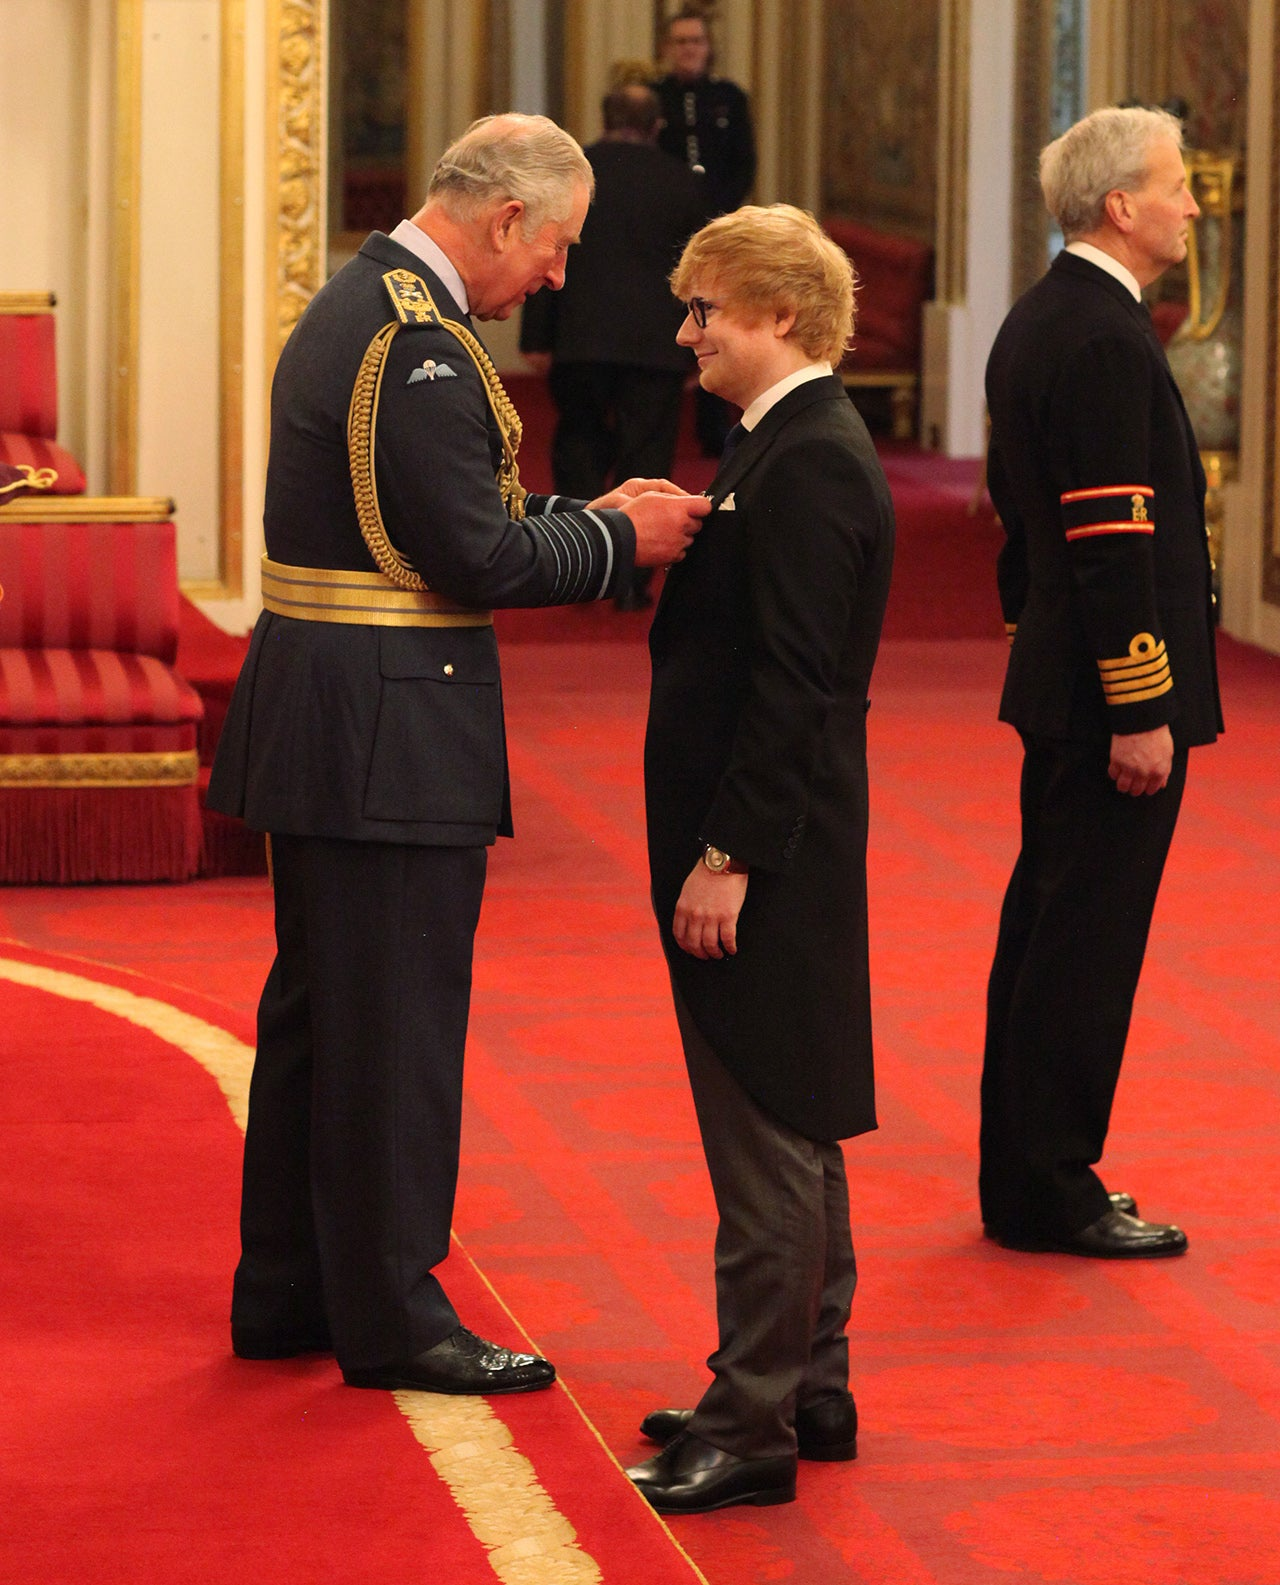 Pop star Ed Sheeran receives honor from Britain's Prince Charles